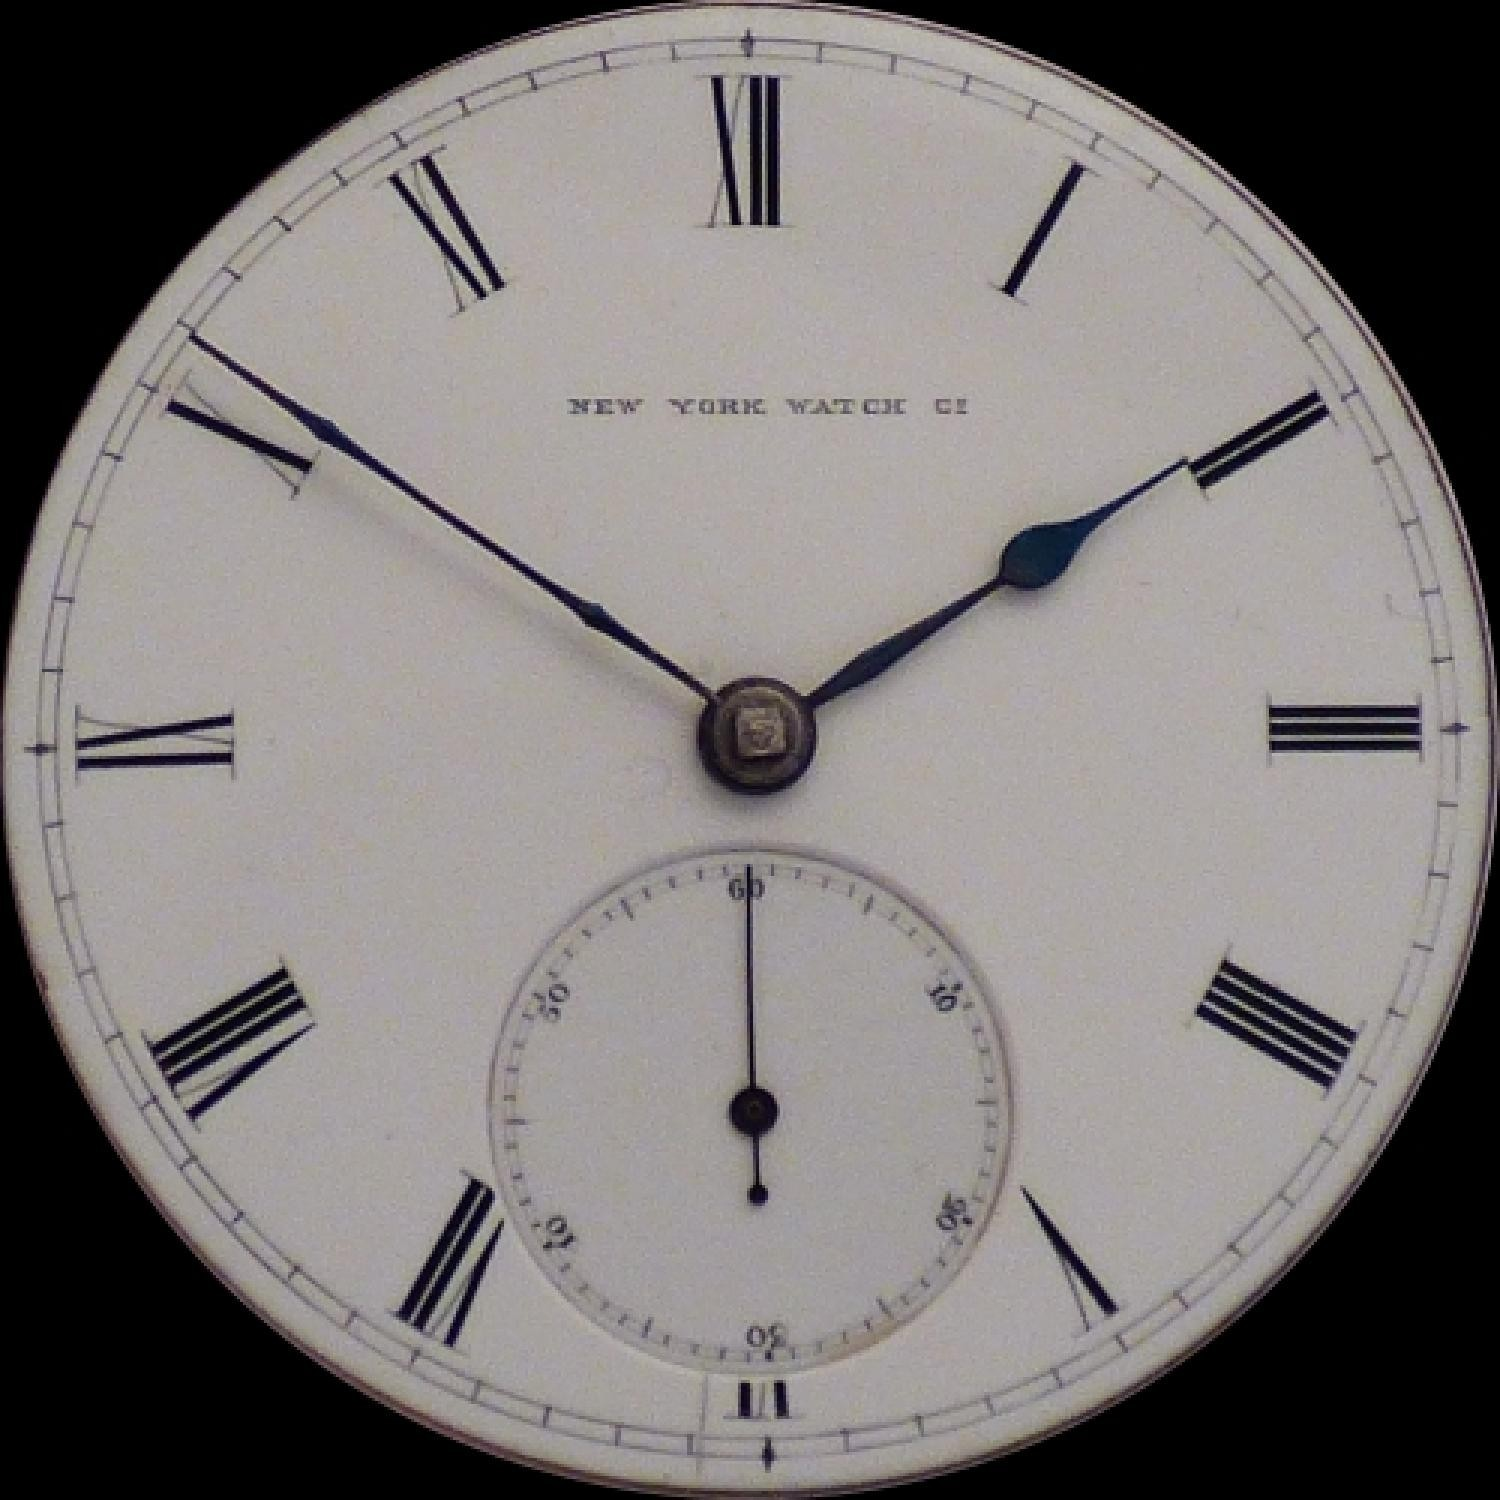 Image of New York Watch Co. Theo E.  Studley #39540 Dial